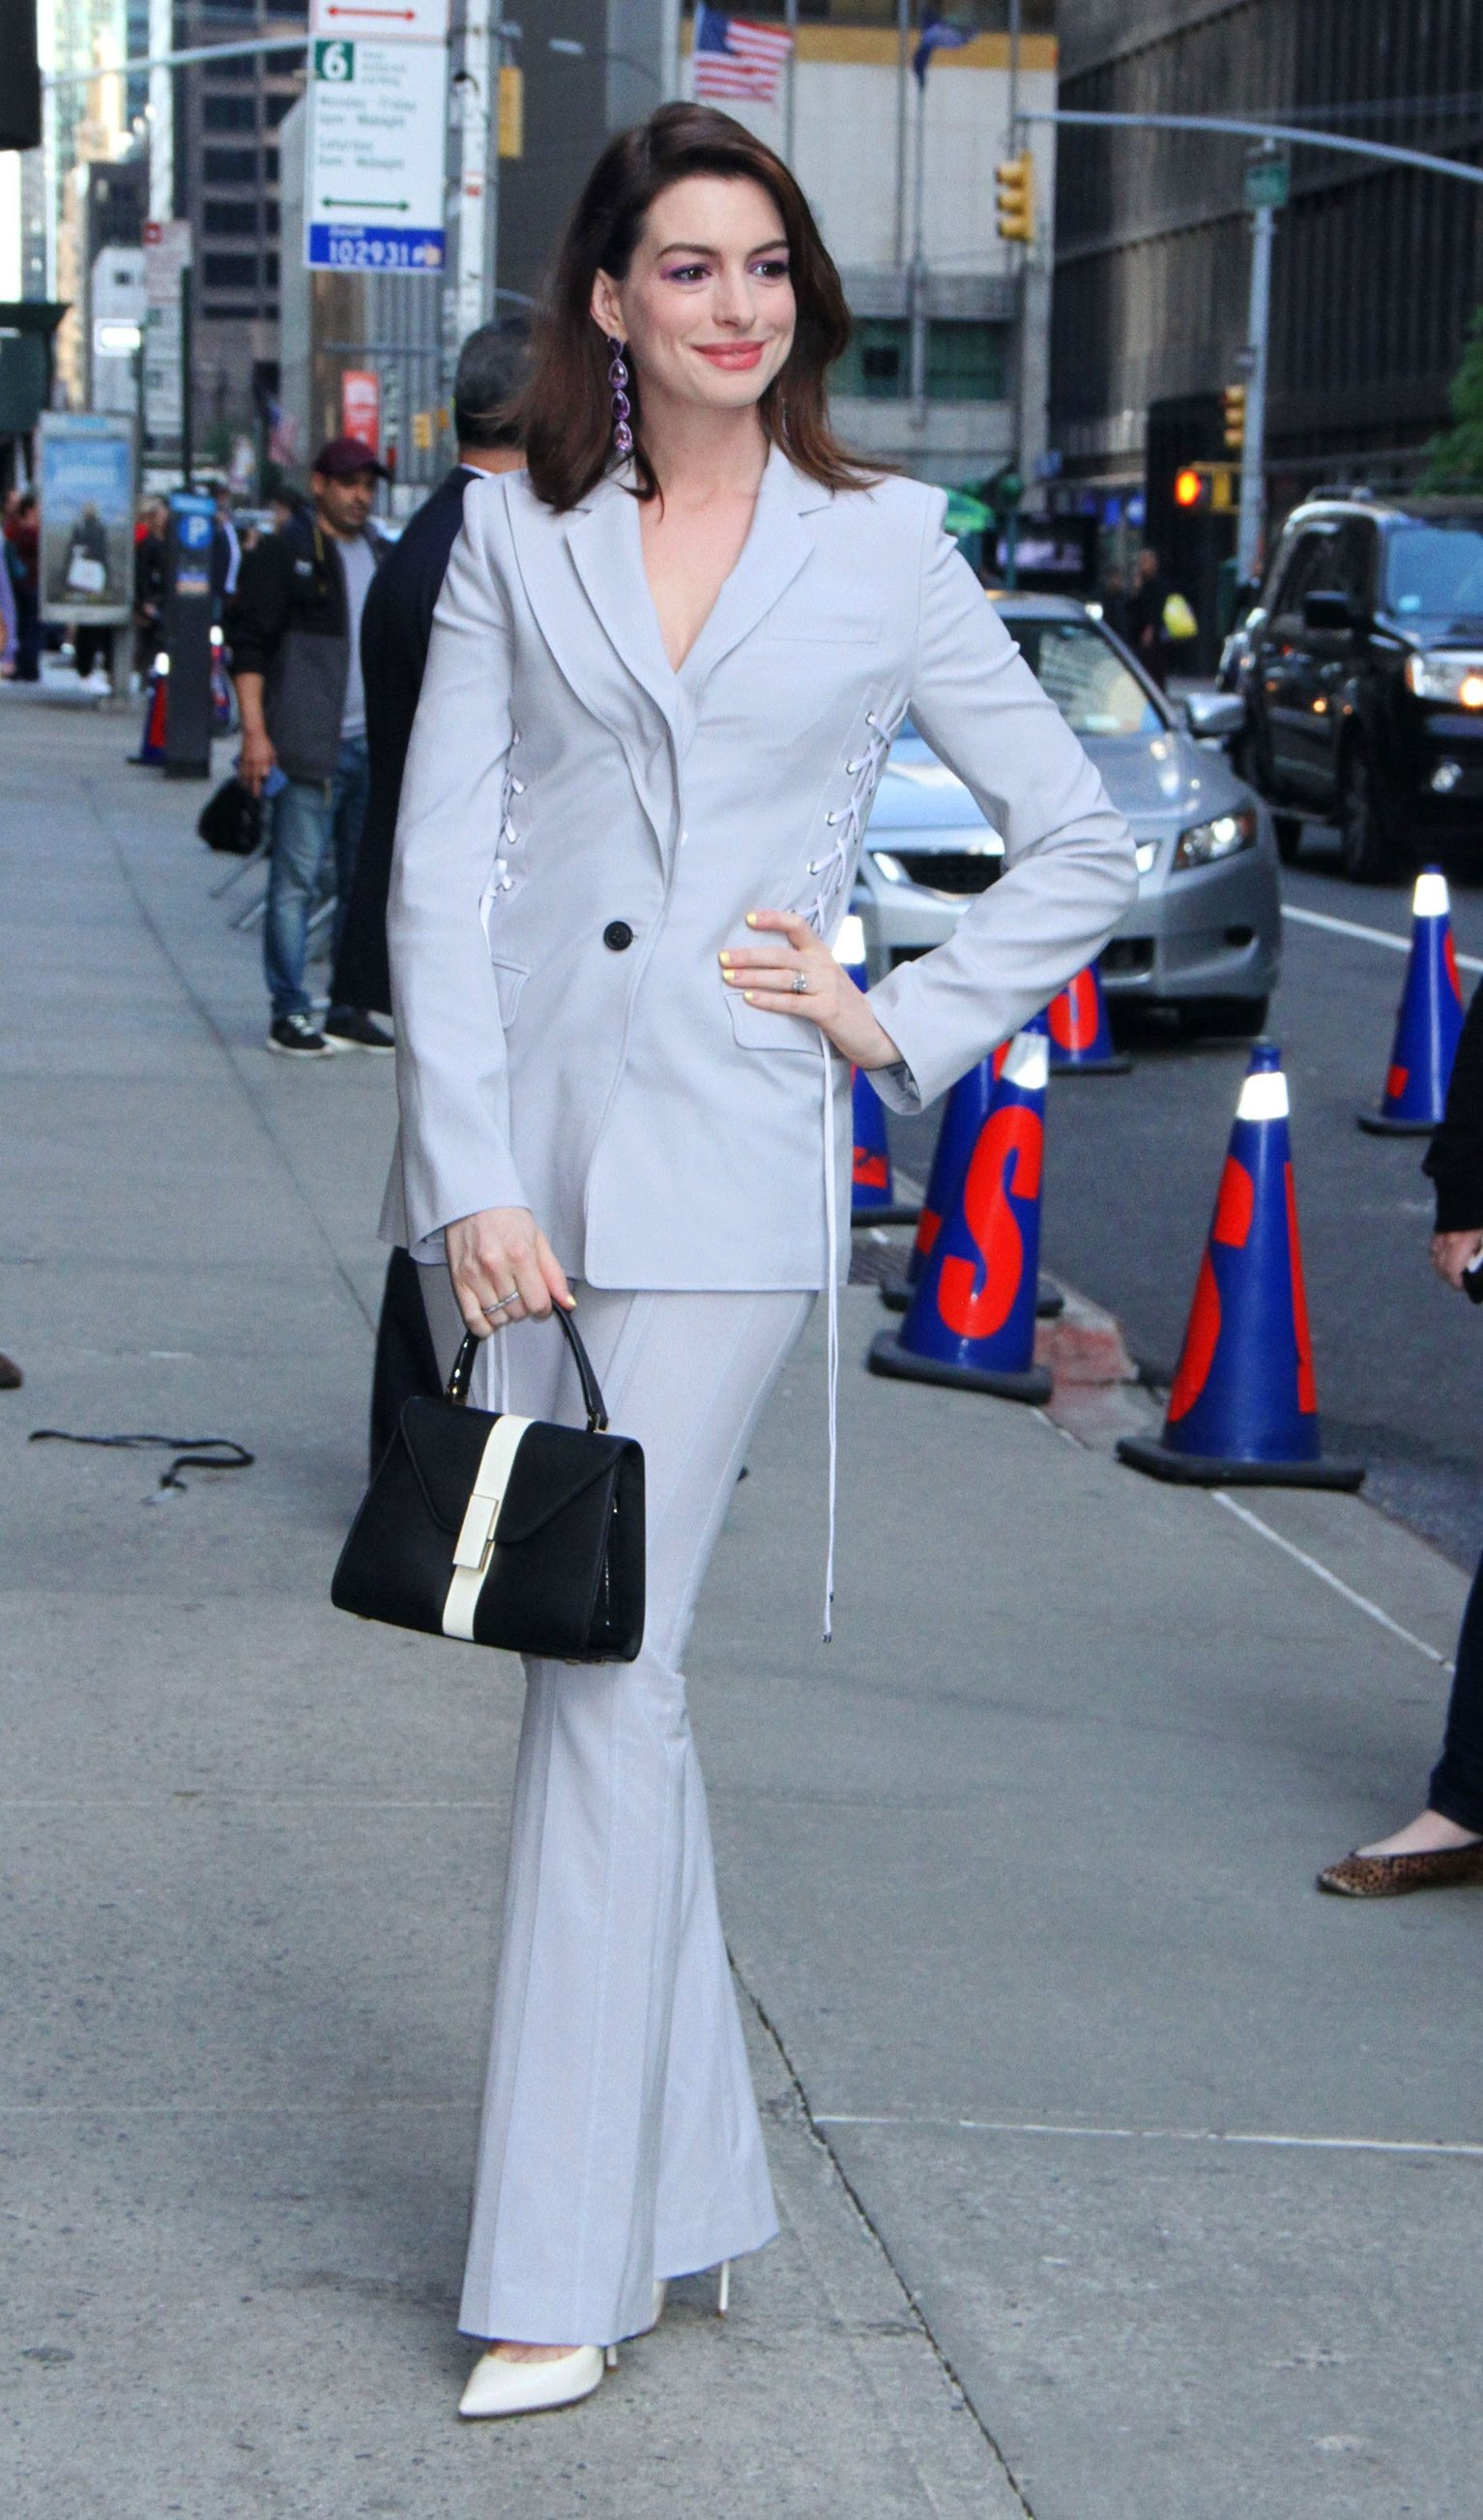 , New York, NY - 20190507-Anne Hathaway Visits The Late Show With Stephen Colbert  -PICTURED: Anne Hathaway -, Image: 431615387, License: Rights-managed, Restrictions: , Model Release: no, Credit line: Profimedia, INSTAR Images